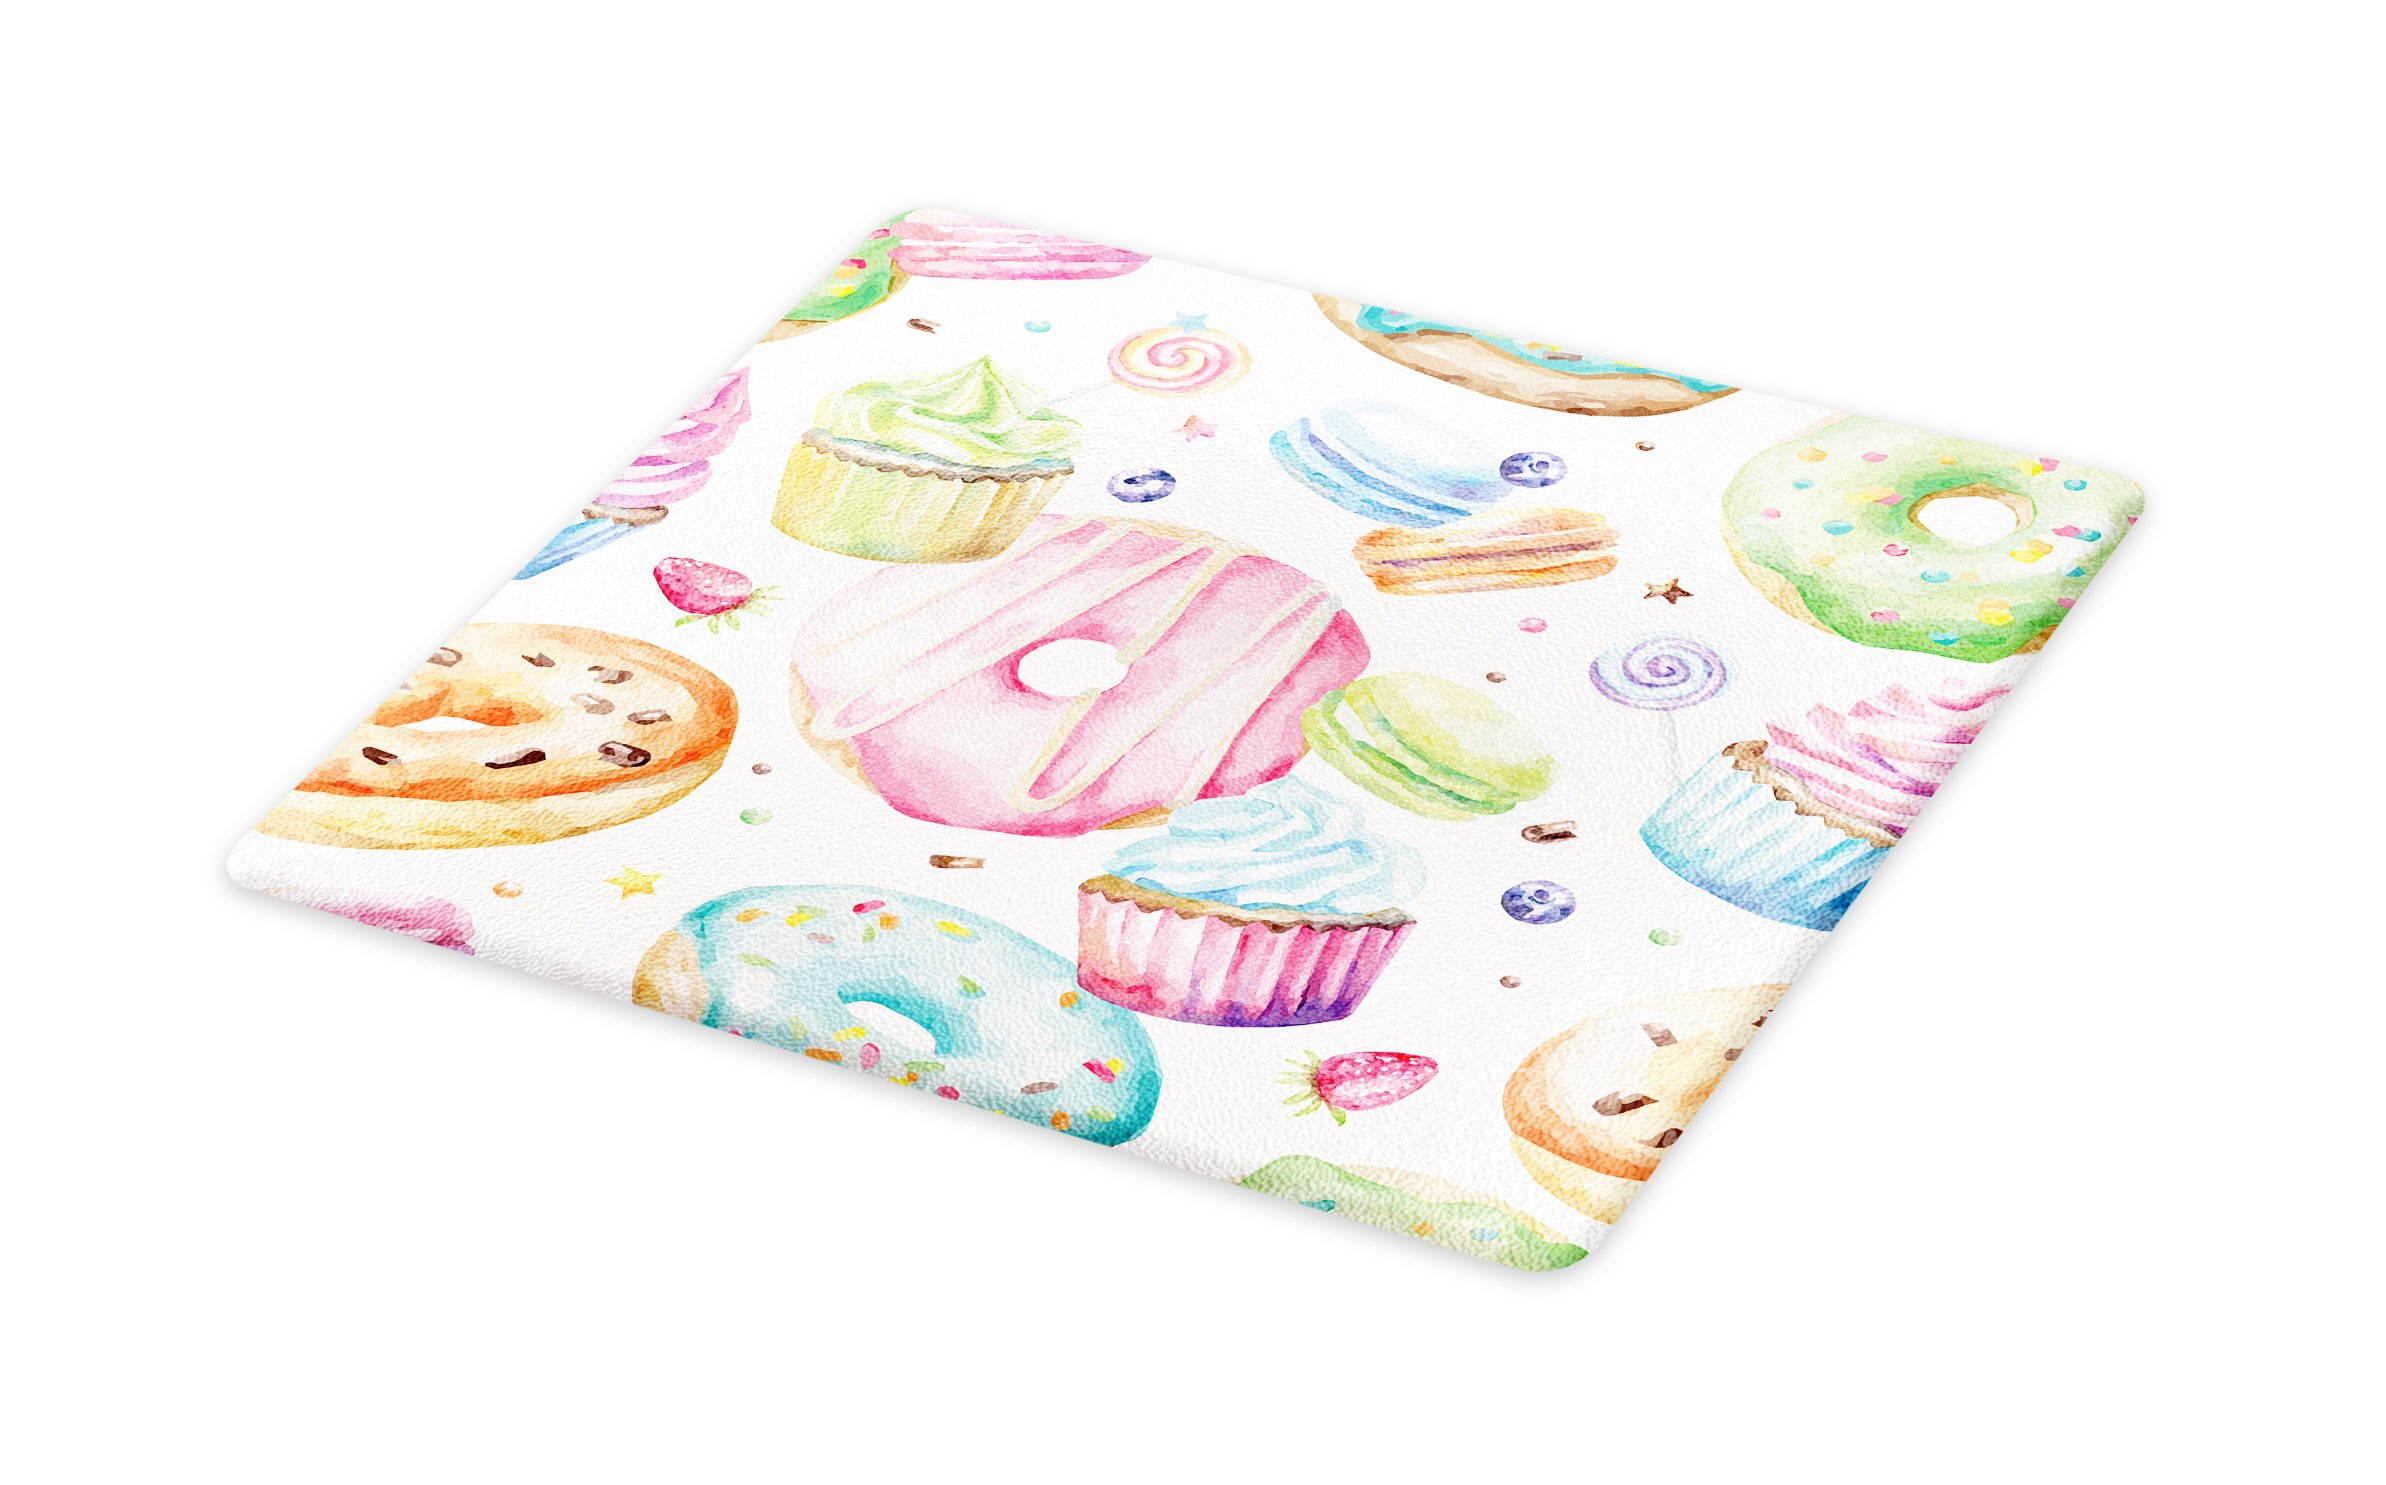 Lunarable Sweets Cutting Board, Delicious Macaron Cupcakes Donuts Muffins Sugar Tasty Yummy Watercolor Design Print, Decorative Tempered Glass Cutting and Serving Board, Large Size, Green Pink by Lunarable